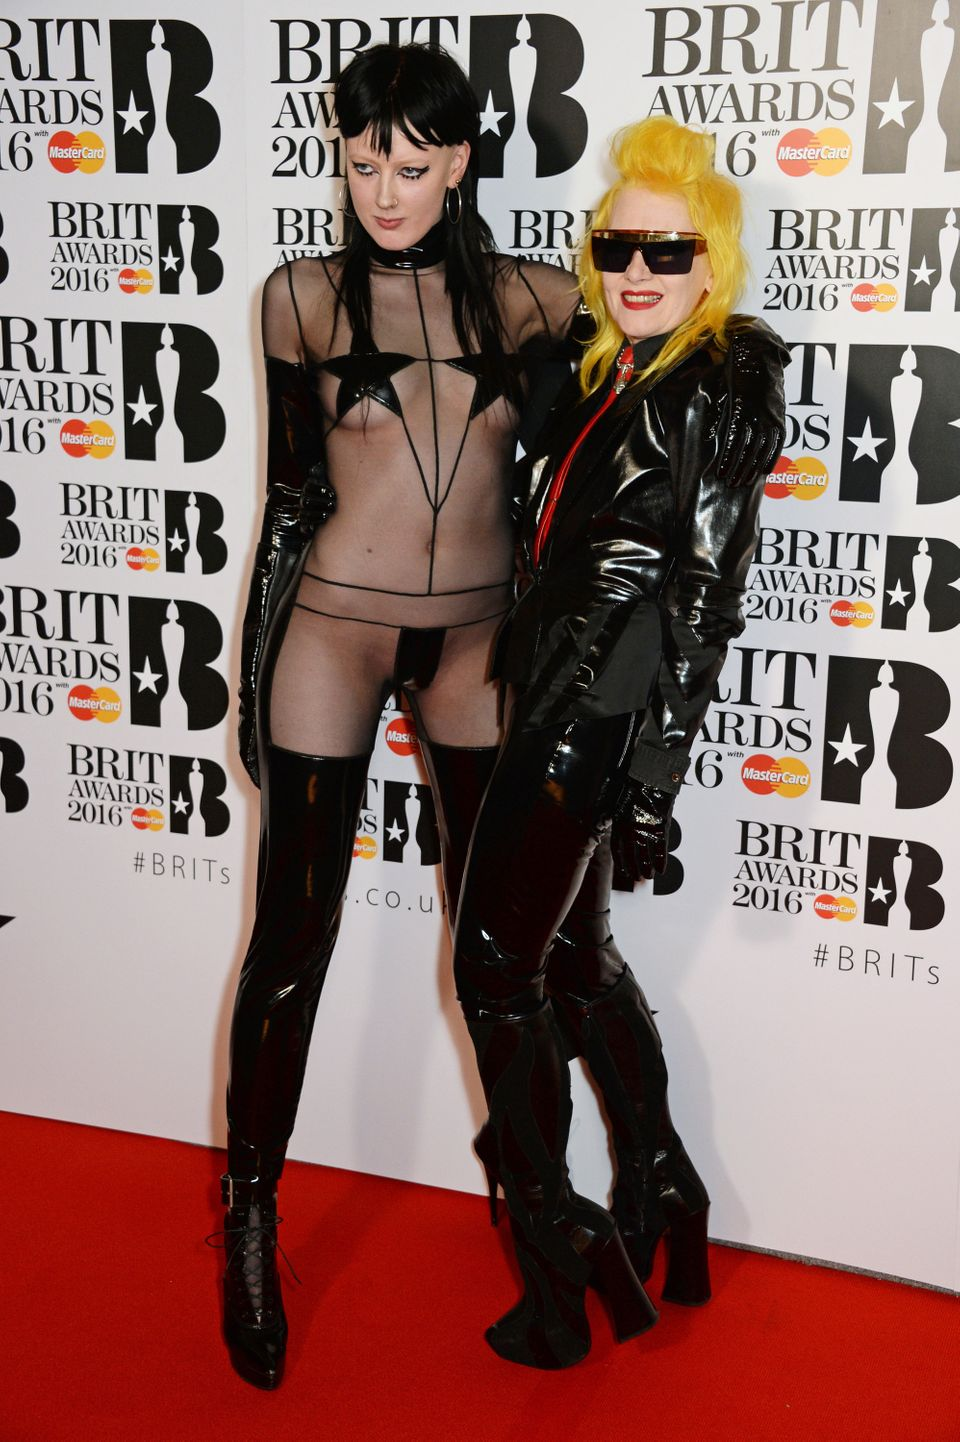 Sadie Pinn (L) and Pam Hogg at the Brit Awards on Feb. 24